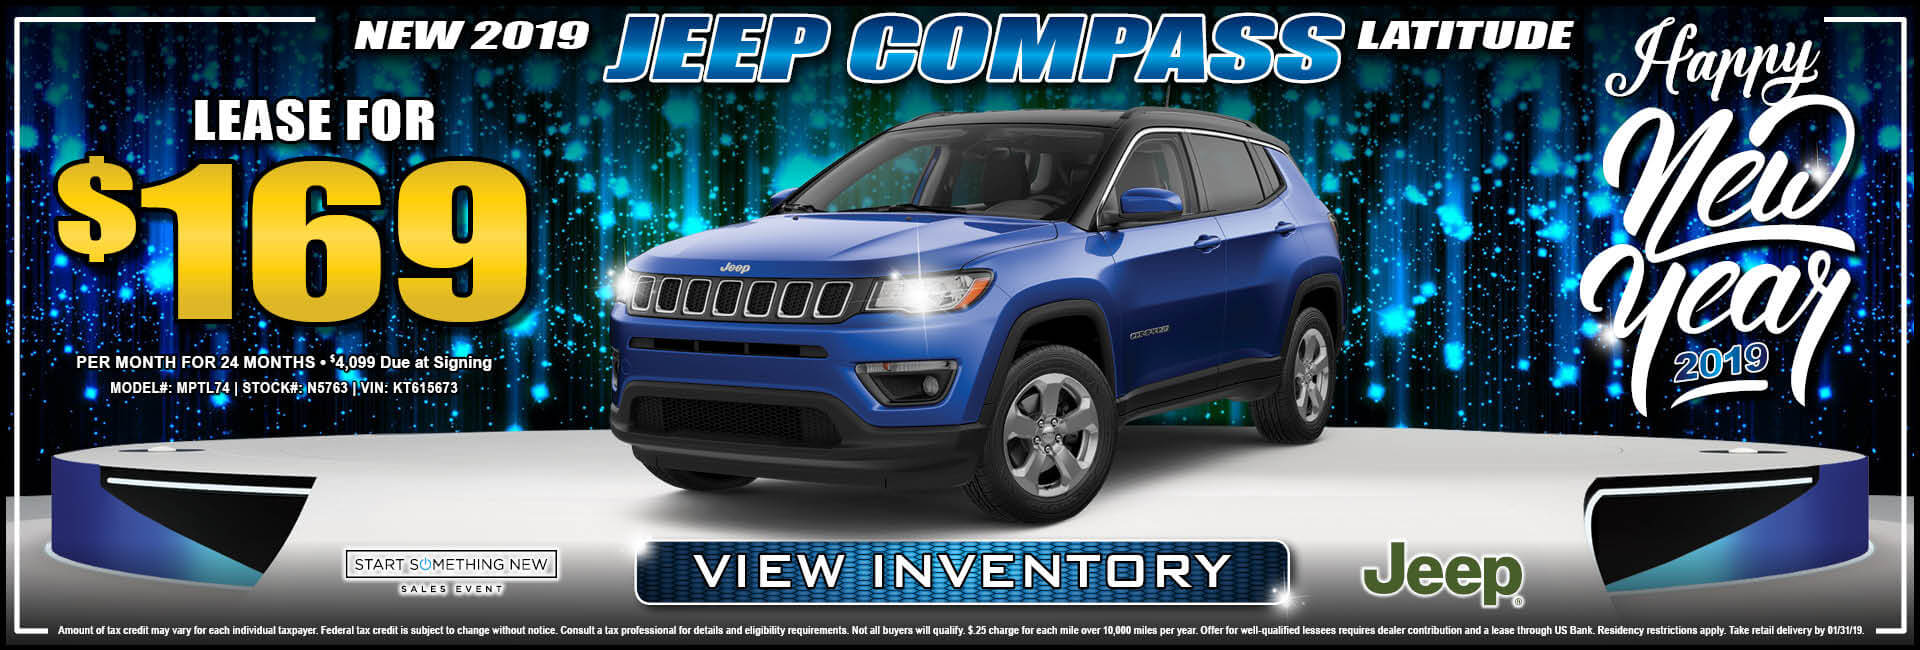 Jeep Compass $169 Lease